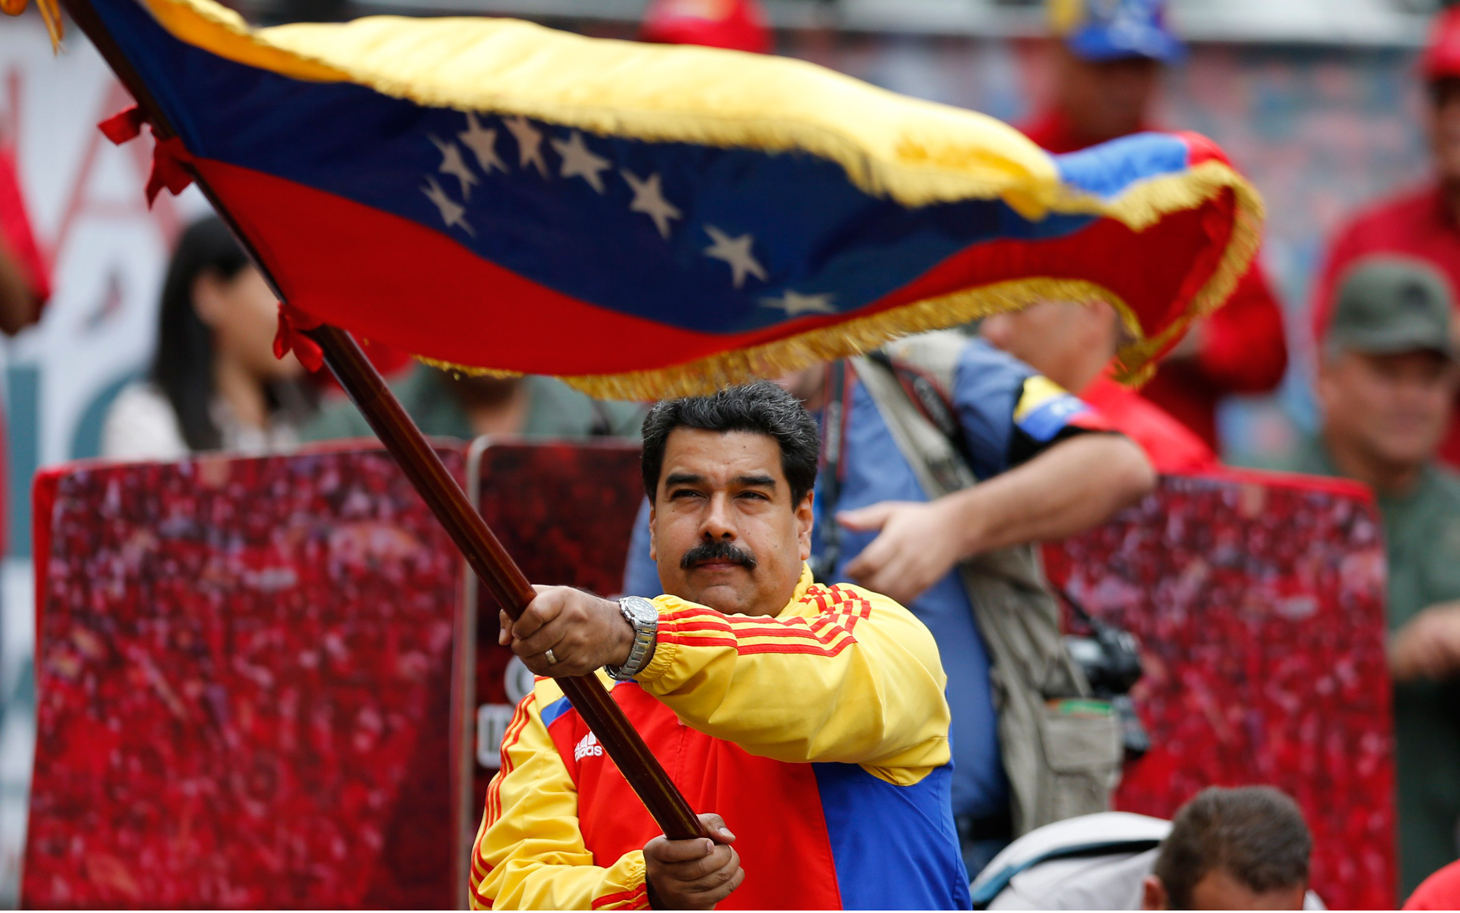 Can People's Power Save the Bolivarian Revolution?